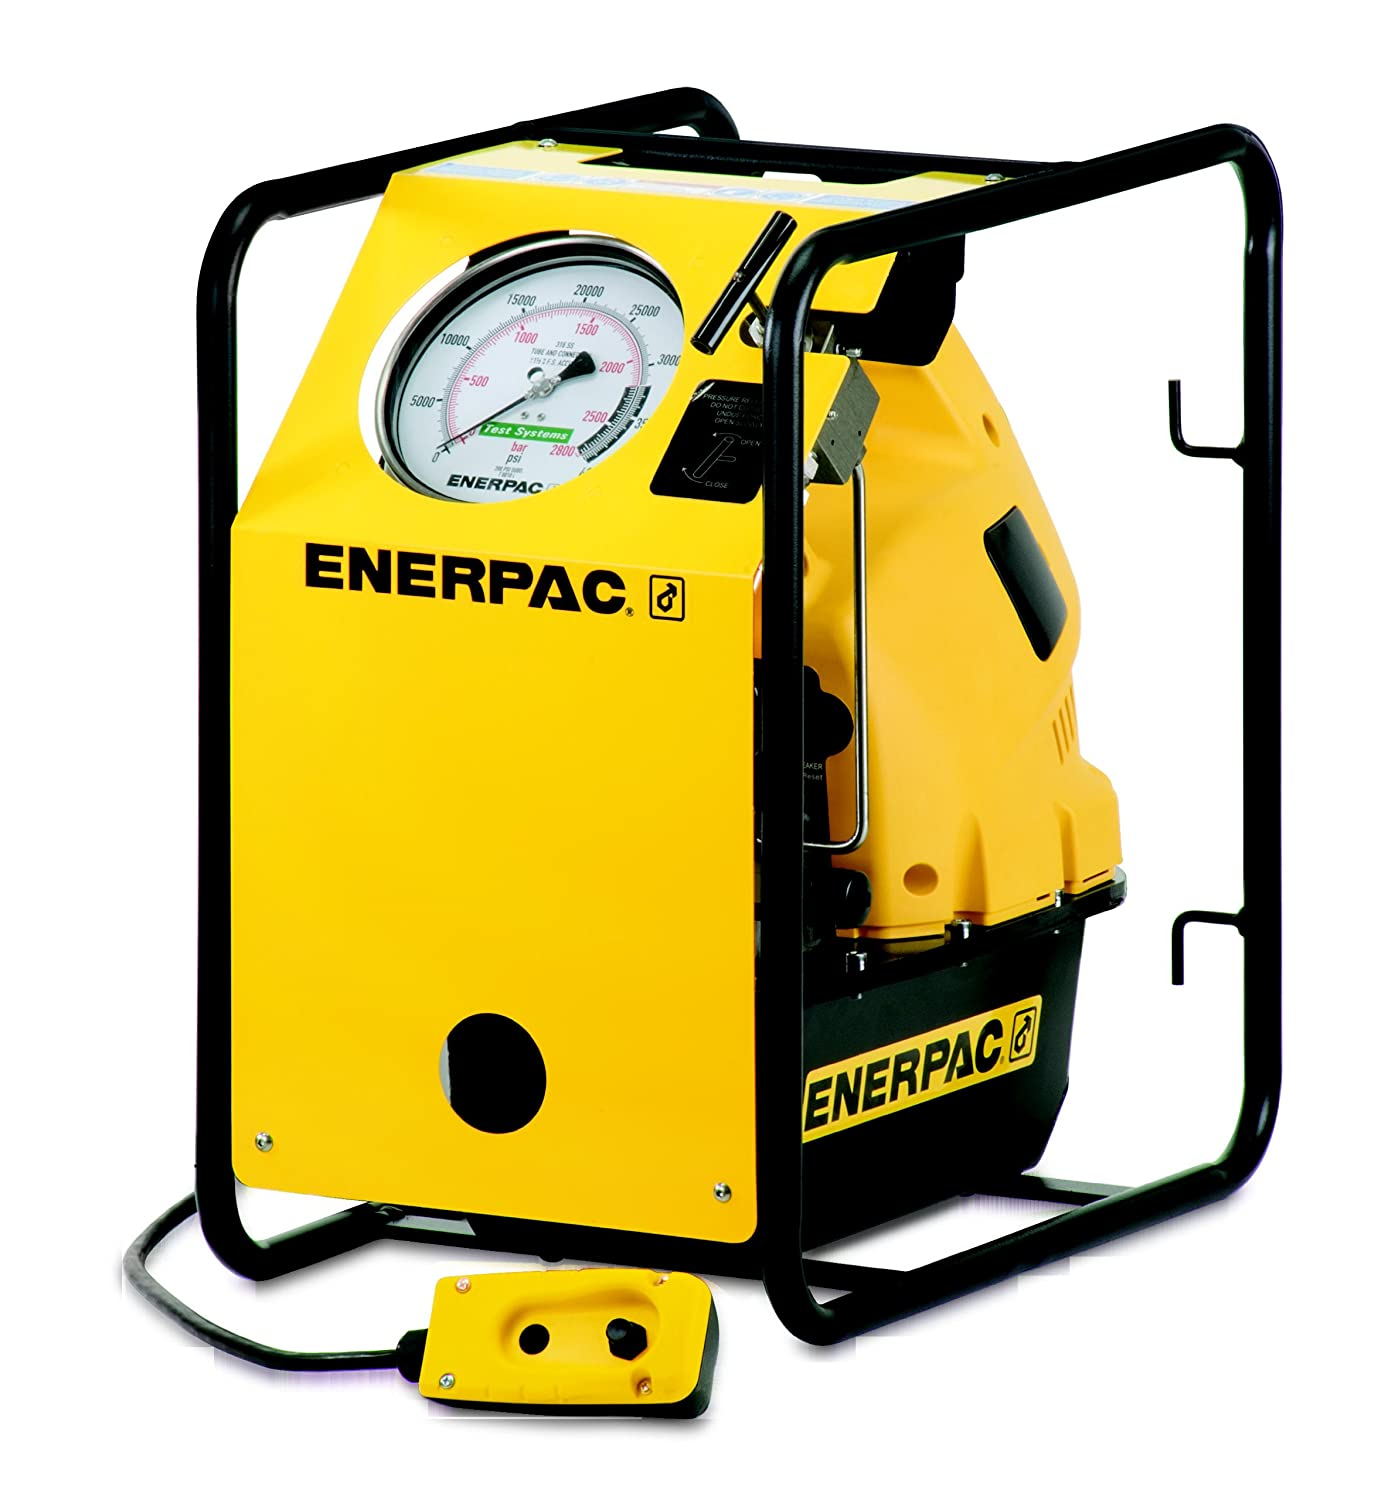 Enerpac Max 66% OFF ZUTP1500B Universal Electric Pump with Barometers 1500 a Branded goods